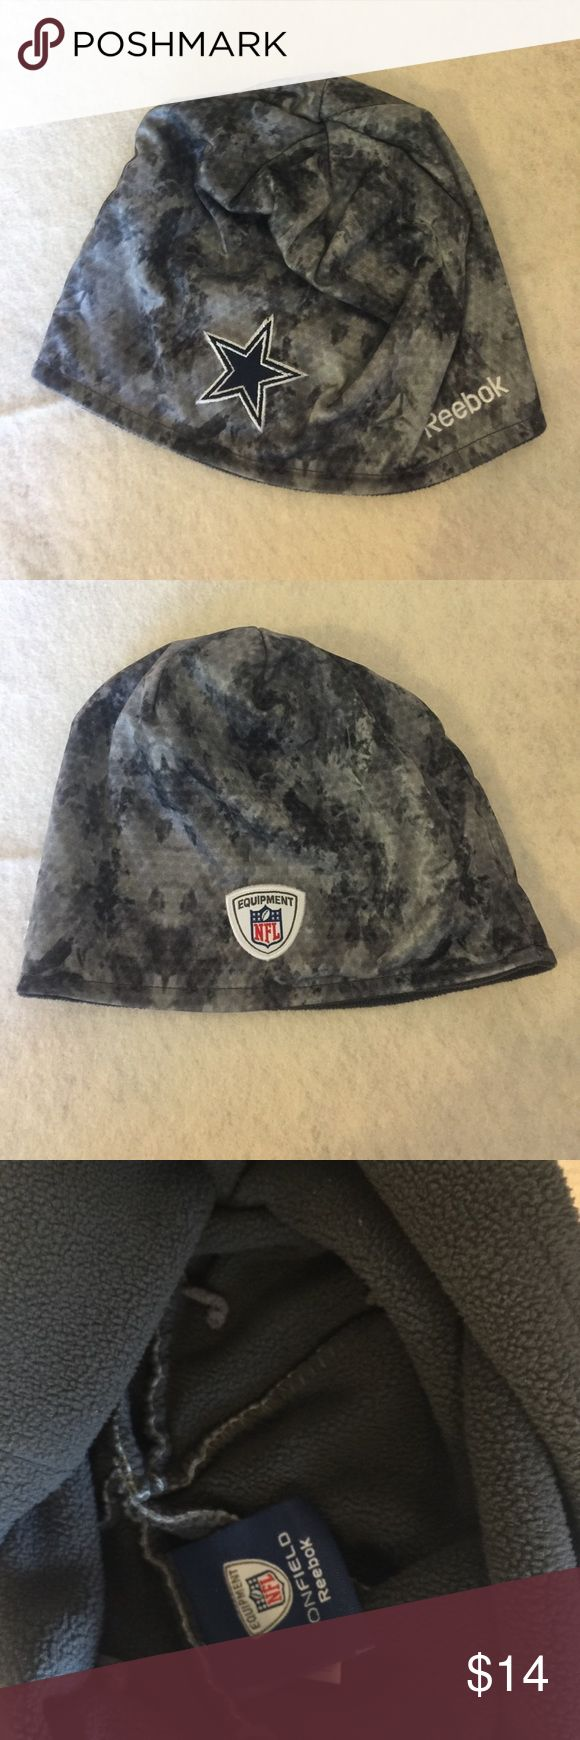 🏈Cowboys NFL Equipment fleece lined 🏈🏈🏈Ready set Hut! Are you ready for some Football???? Score big with this fleece lined Dallas Cowboys beanie!!! NFL Equipment  & Reebok🤗Oh yeah! Reebok Accessories Hats